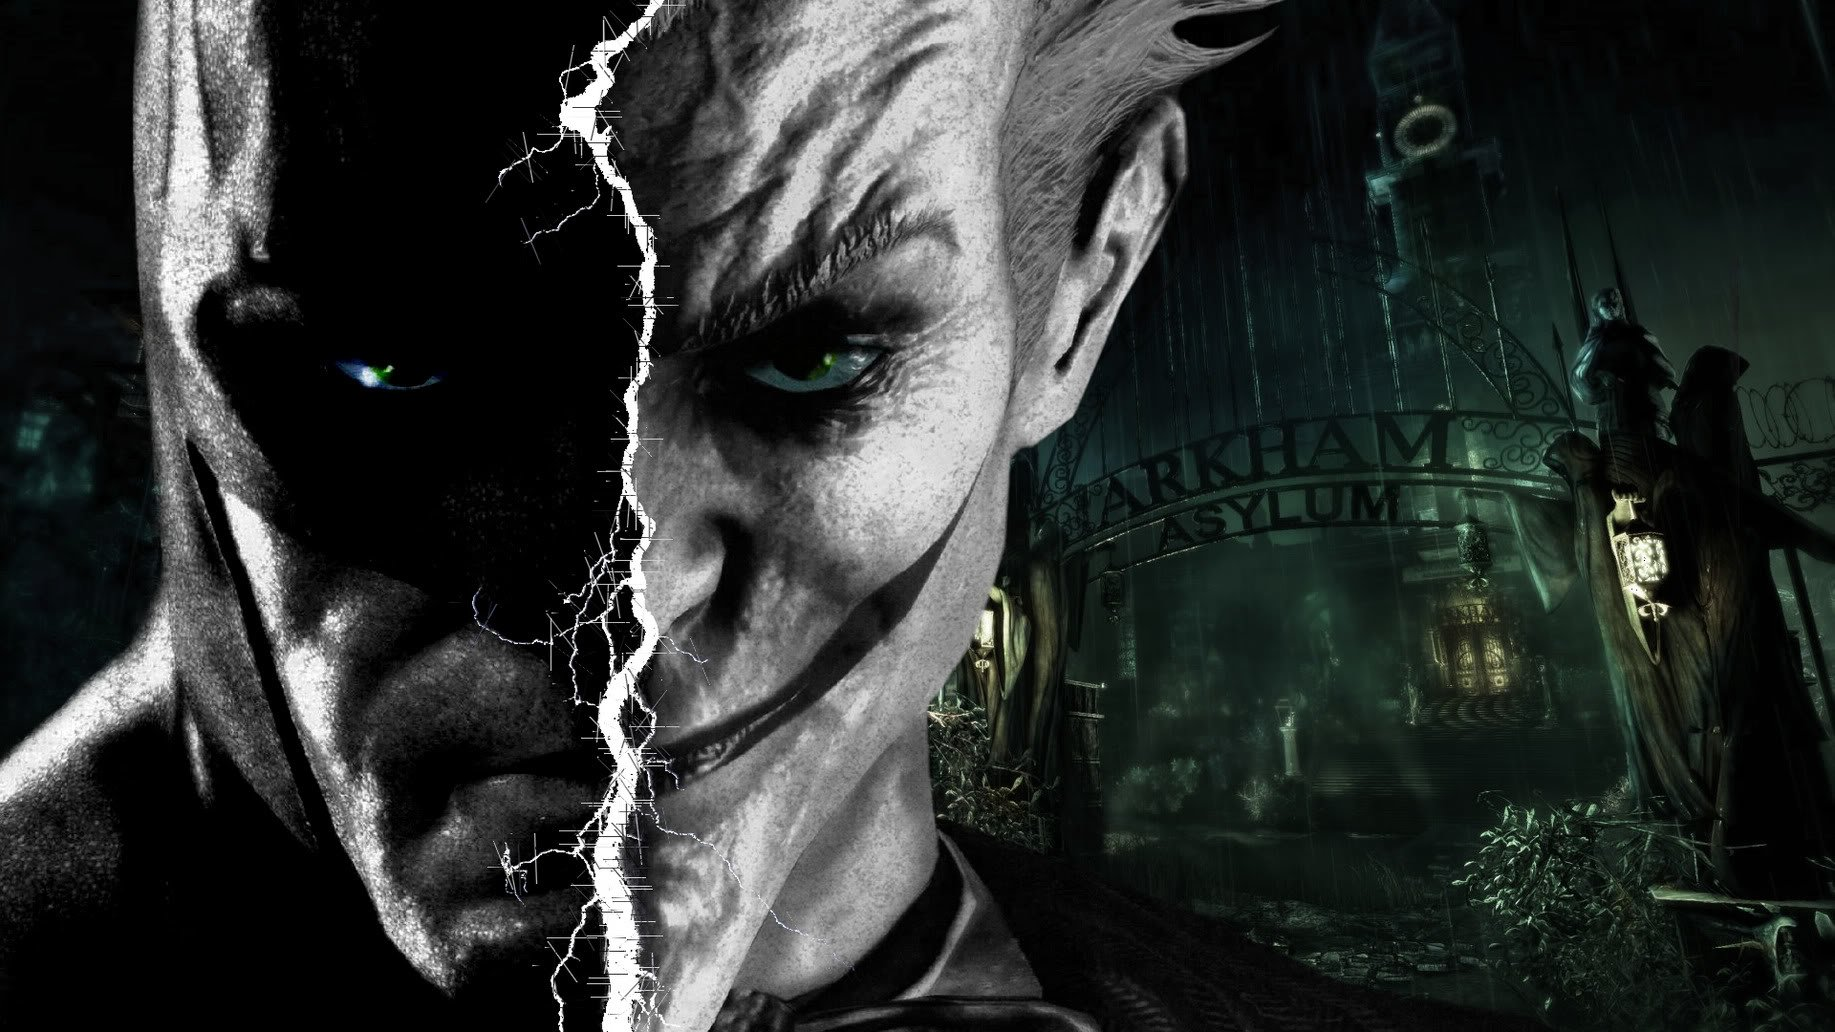 batman: arkham asylum wallpaper and background image | 1835x1032